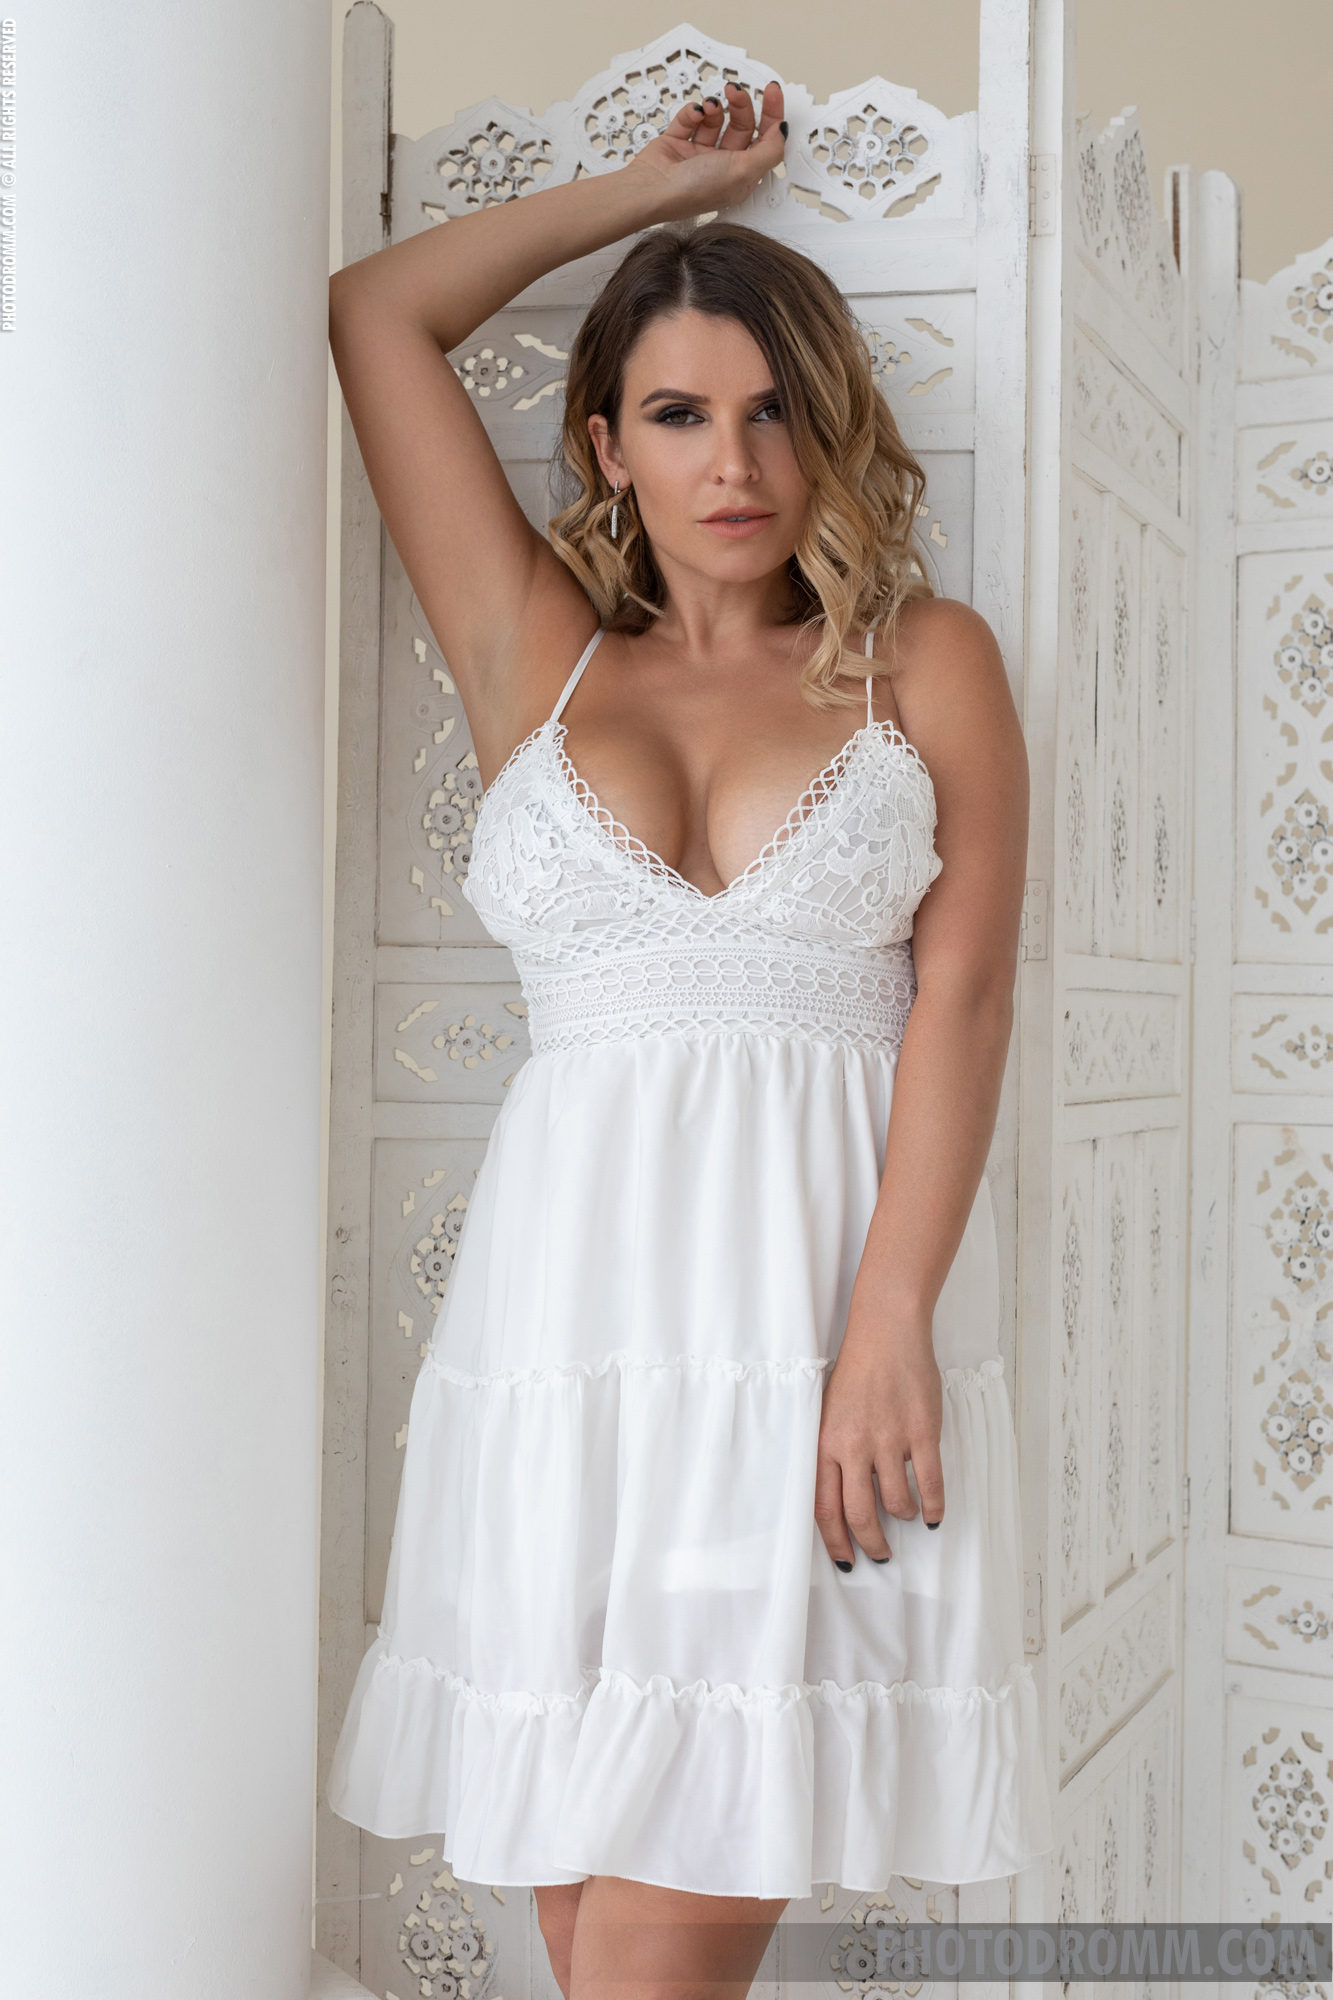 Sharona Big Tits in White Summer Dress for Photodromm